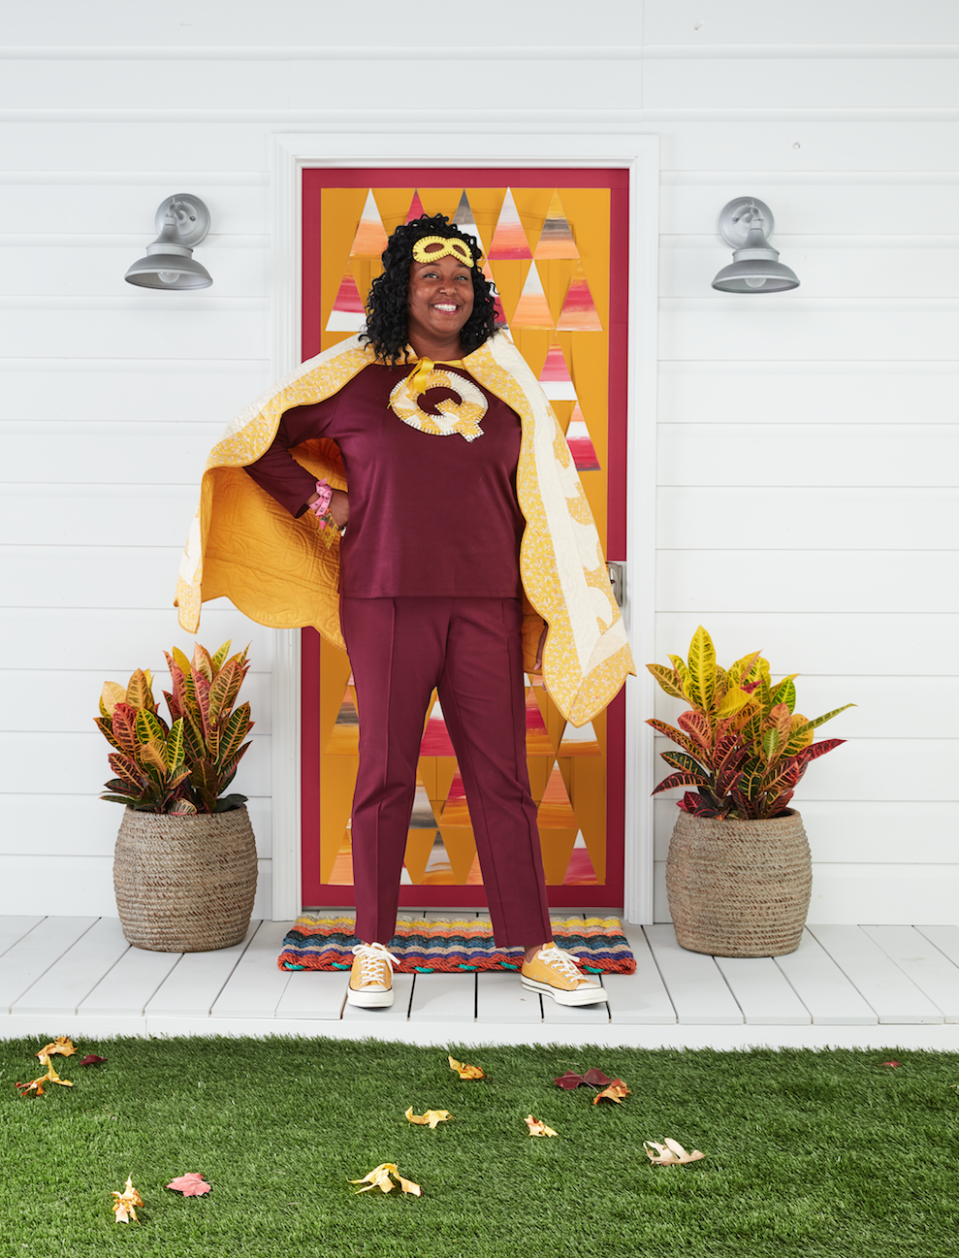 """<p>When you're a mom, you're already a superhero. However, if you love quilting, become the super quilter for Halloween!</p><p><strong>Make the Costume: </strong>Cut a quilt into a trapezoid shape; sew a corresponding color bias tape around the edges to finish. At the top corner of the trapezoid, sew a corresponding color ribbon for ties. Use a scrap of the quilt to cut out an oversize letter """"Q"""" and blanket stitch it to the front of a T-shirt. Blanket stitch around the edges of a felt superhero mask and round out the look with a tailor tape measure bracelet adorned with sewing charms. Glue a metal thimble to a silver ring blank to create a superpower ring.</p><p><a class=""""link rapid-noclick-resp"""" href=""""https://www.amazon.com/flic-flac-inches-Assorted-Fabric-Patchwork/dp/B01GCRXBVE/?tag=syn-yahoo-20&ascsubtag=%5Bartid%7C10050.g.28181767%5Bsrc%7Cyahoo-us"""" rel=""""nofollow noopener"""" target=""""_blank"""" data-ylk=""""slk:SHOP FELT"""">SHOP FELT</a></p>"""